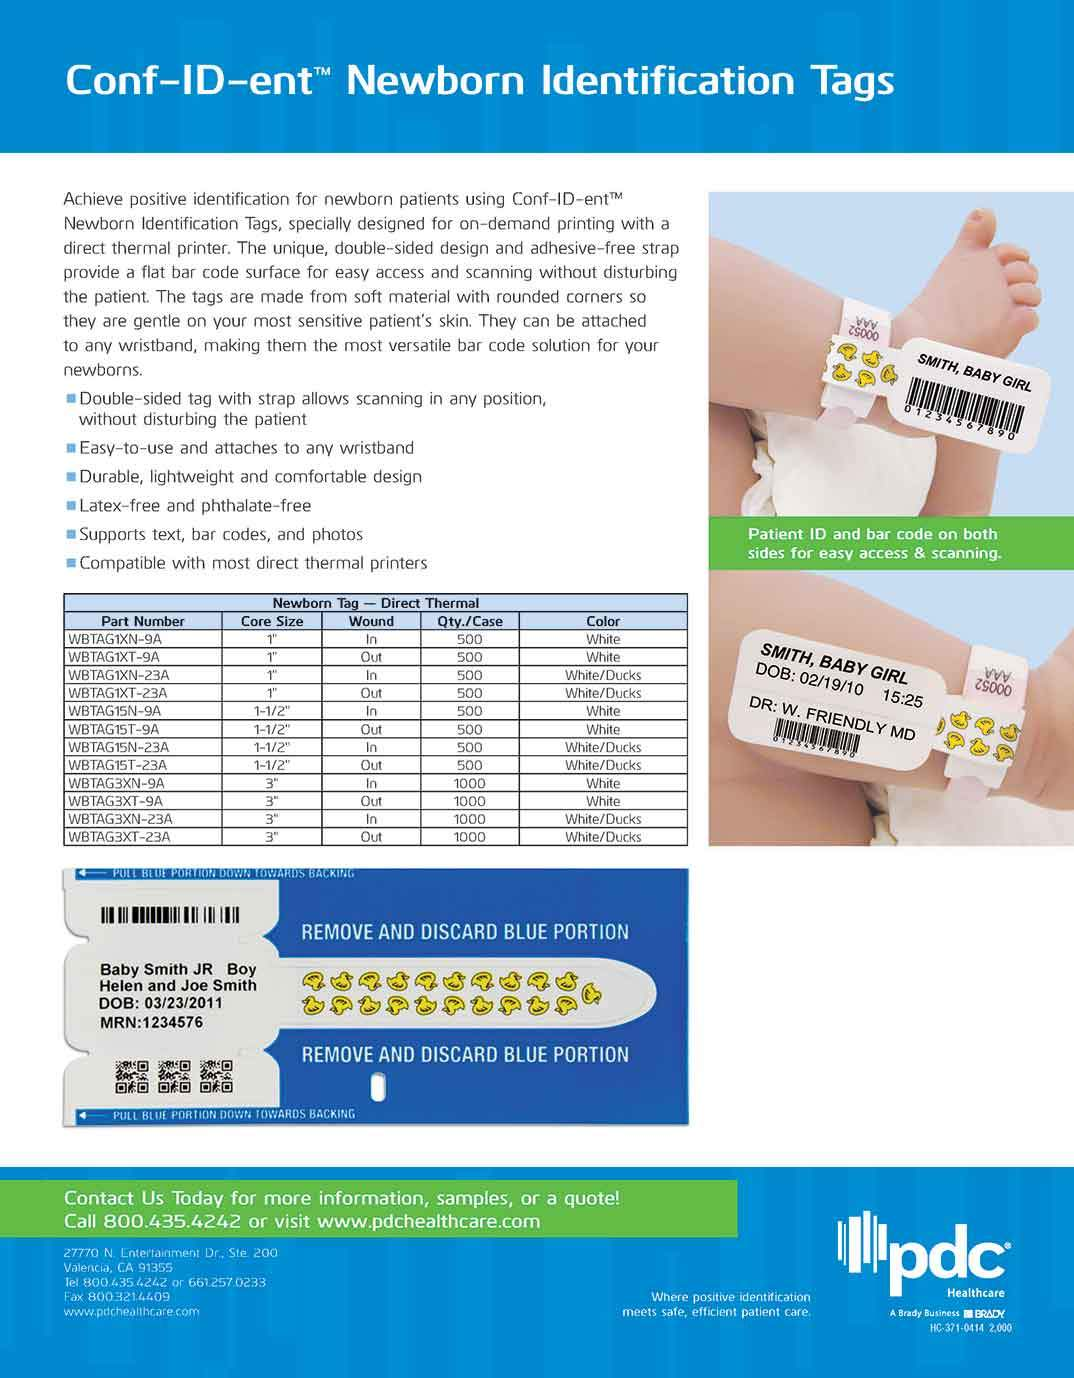 Conf-ID-ent™ Newborn Identification Tags